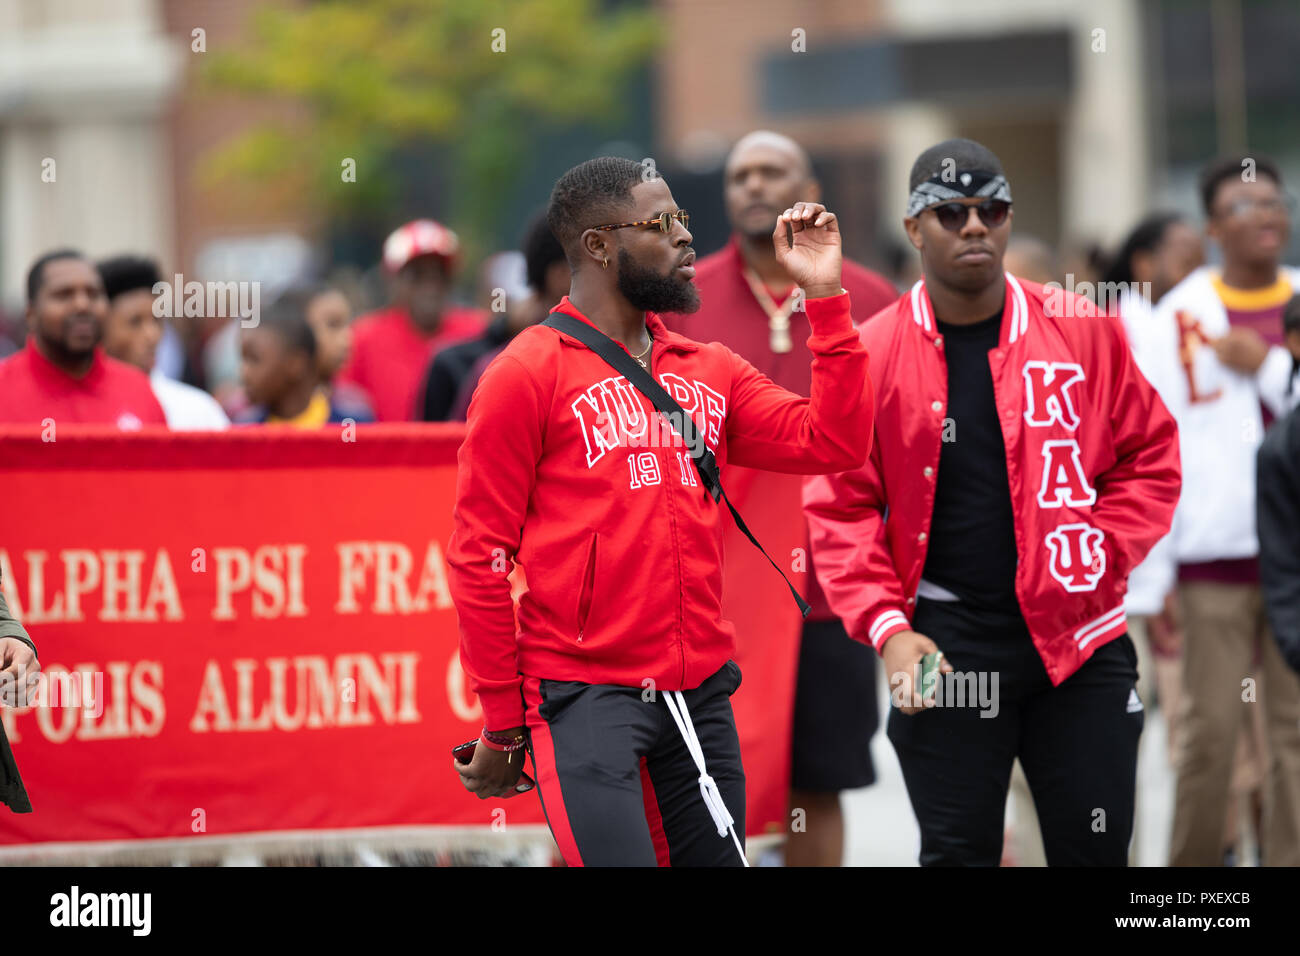 Indianapolis, Indiana, USA - September 22, 2018: The Circle City Classic Parade, Members of the Kappa Alpha Psi Fraternity dancing during the parade - Stock Image